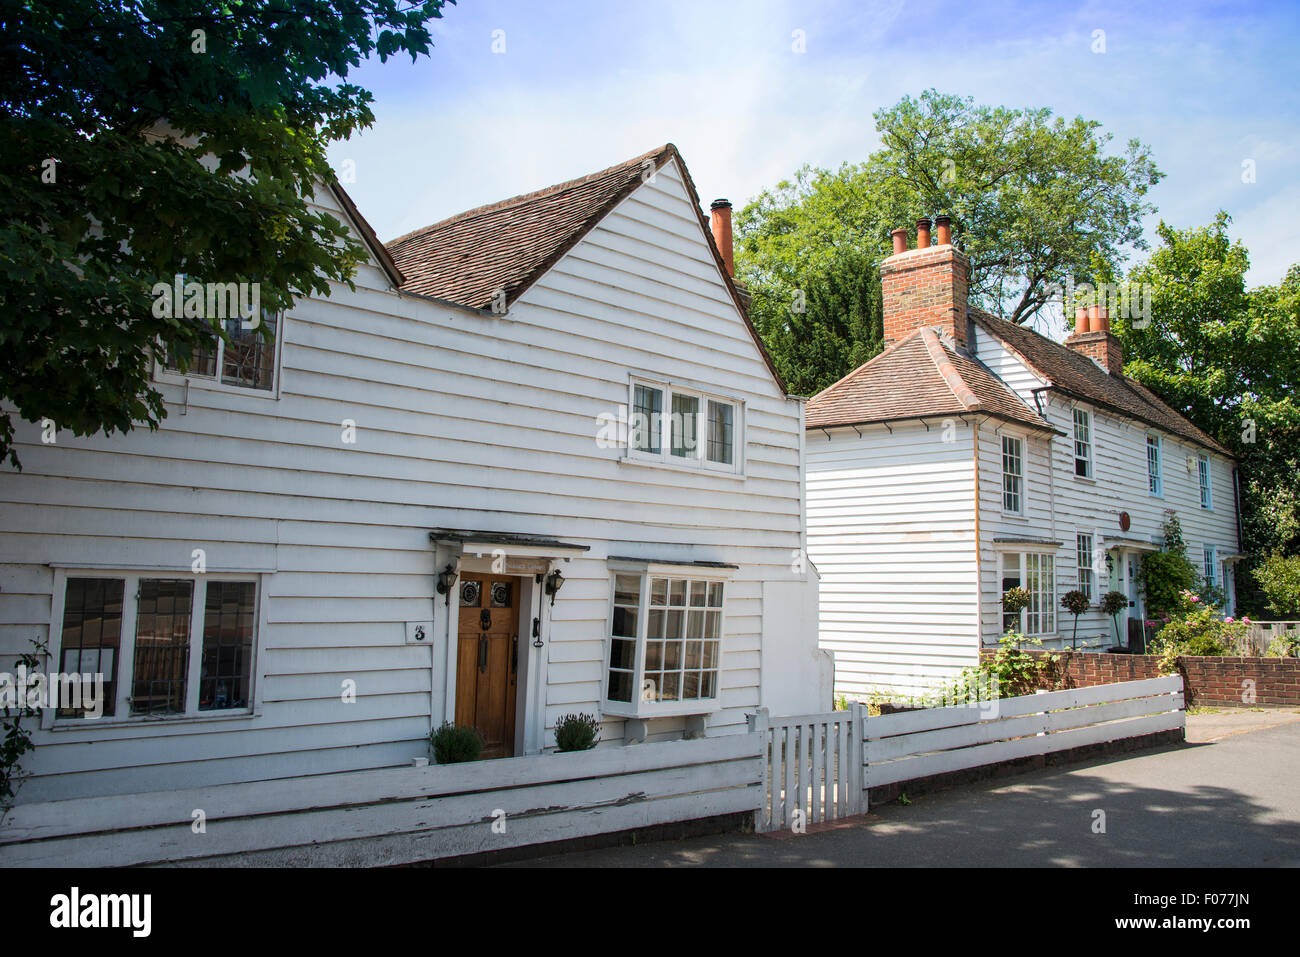 17th Century wooden cottages, Malden Road, Cheam Village, London Borough of Sutton, Greater London, England, United - Stock Image